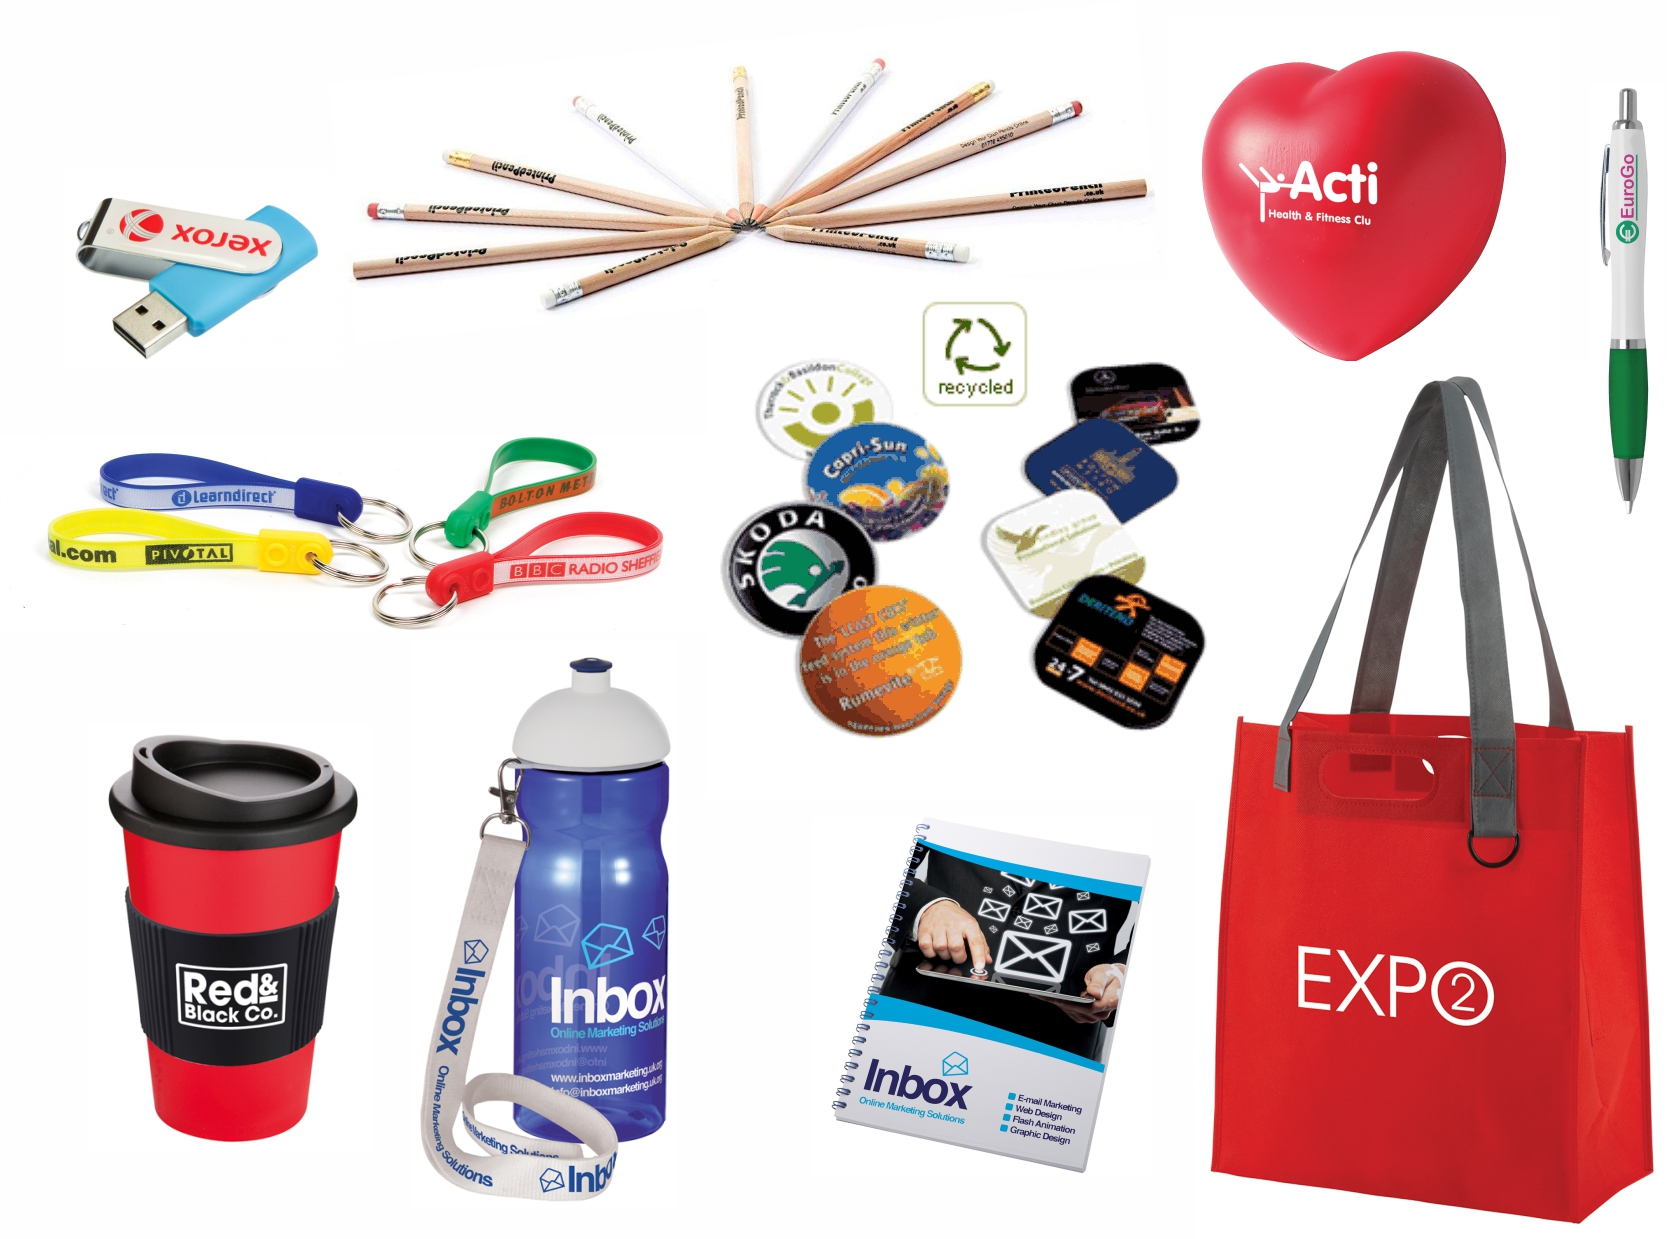 Enticing visitors to your exhibition stand